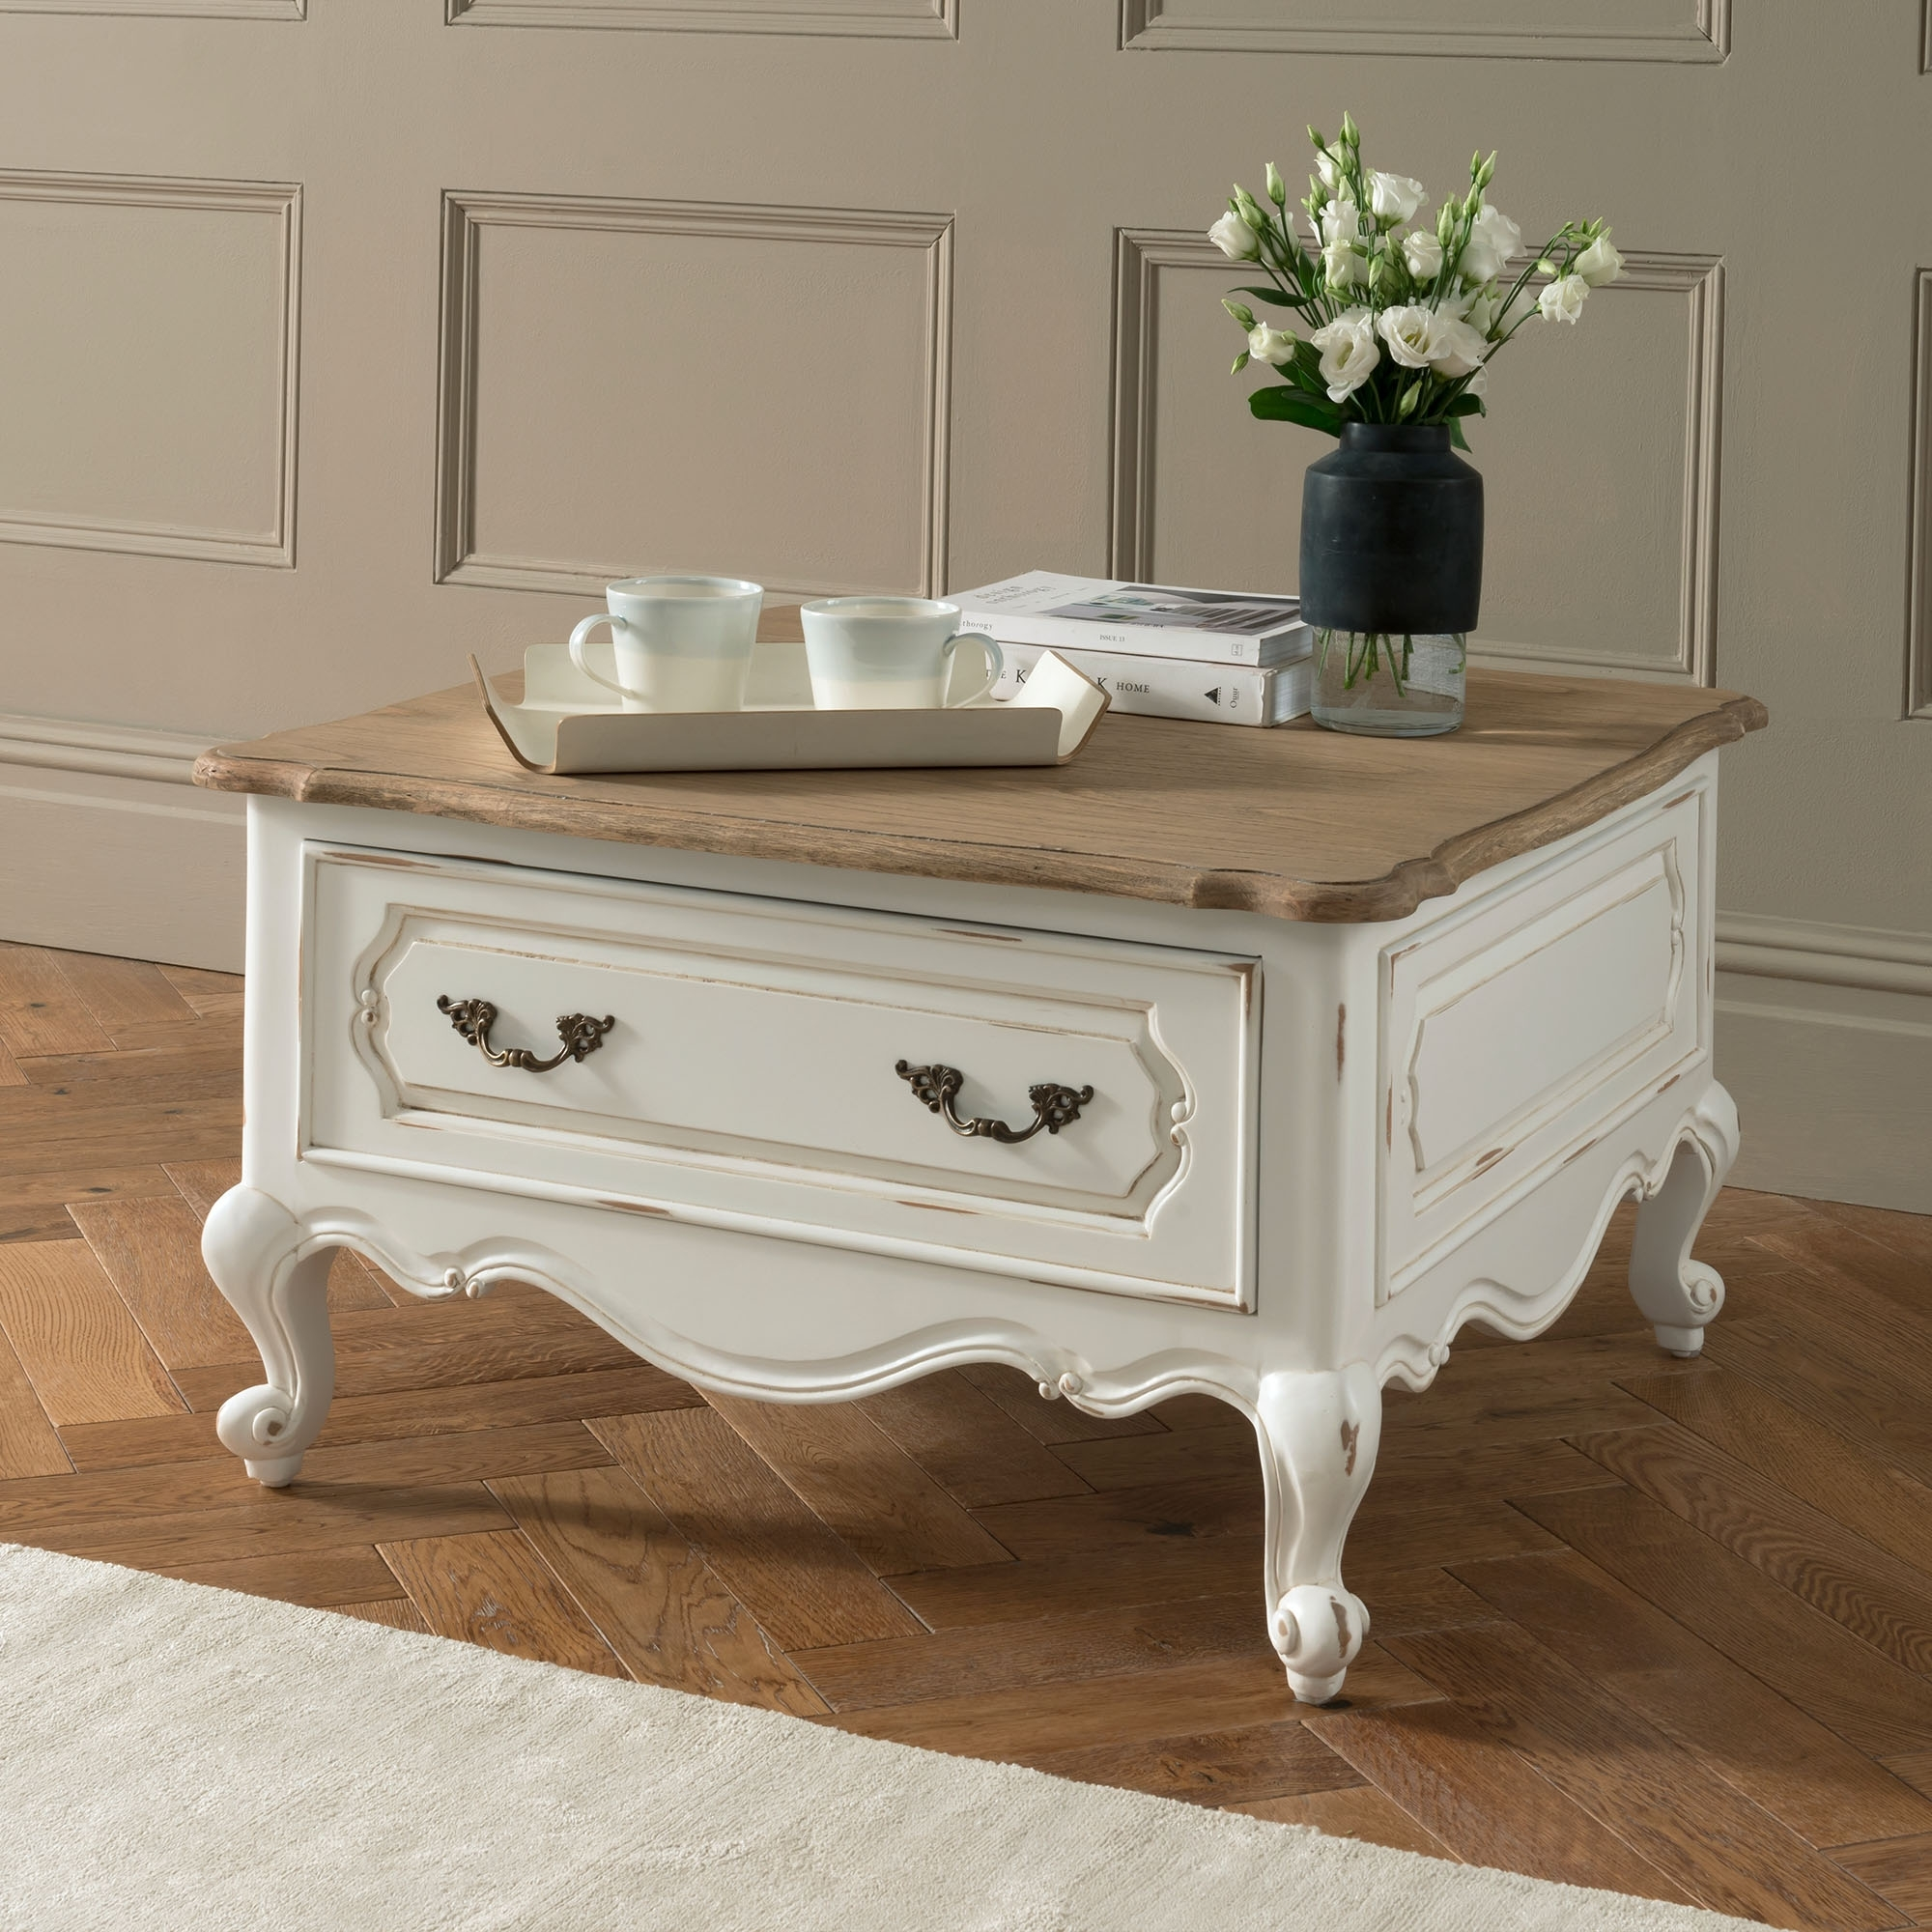 Antique French Style Coffee Table | French Furniture Online Now